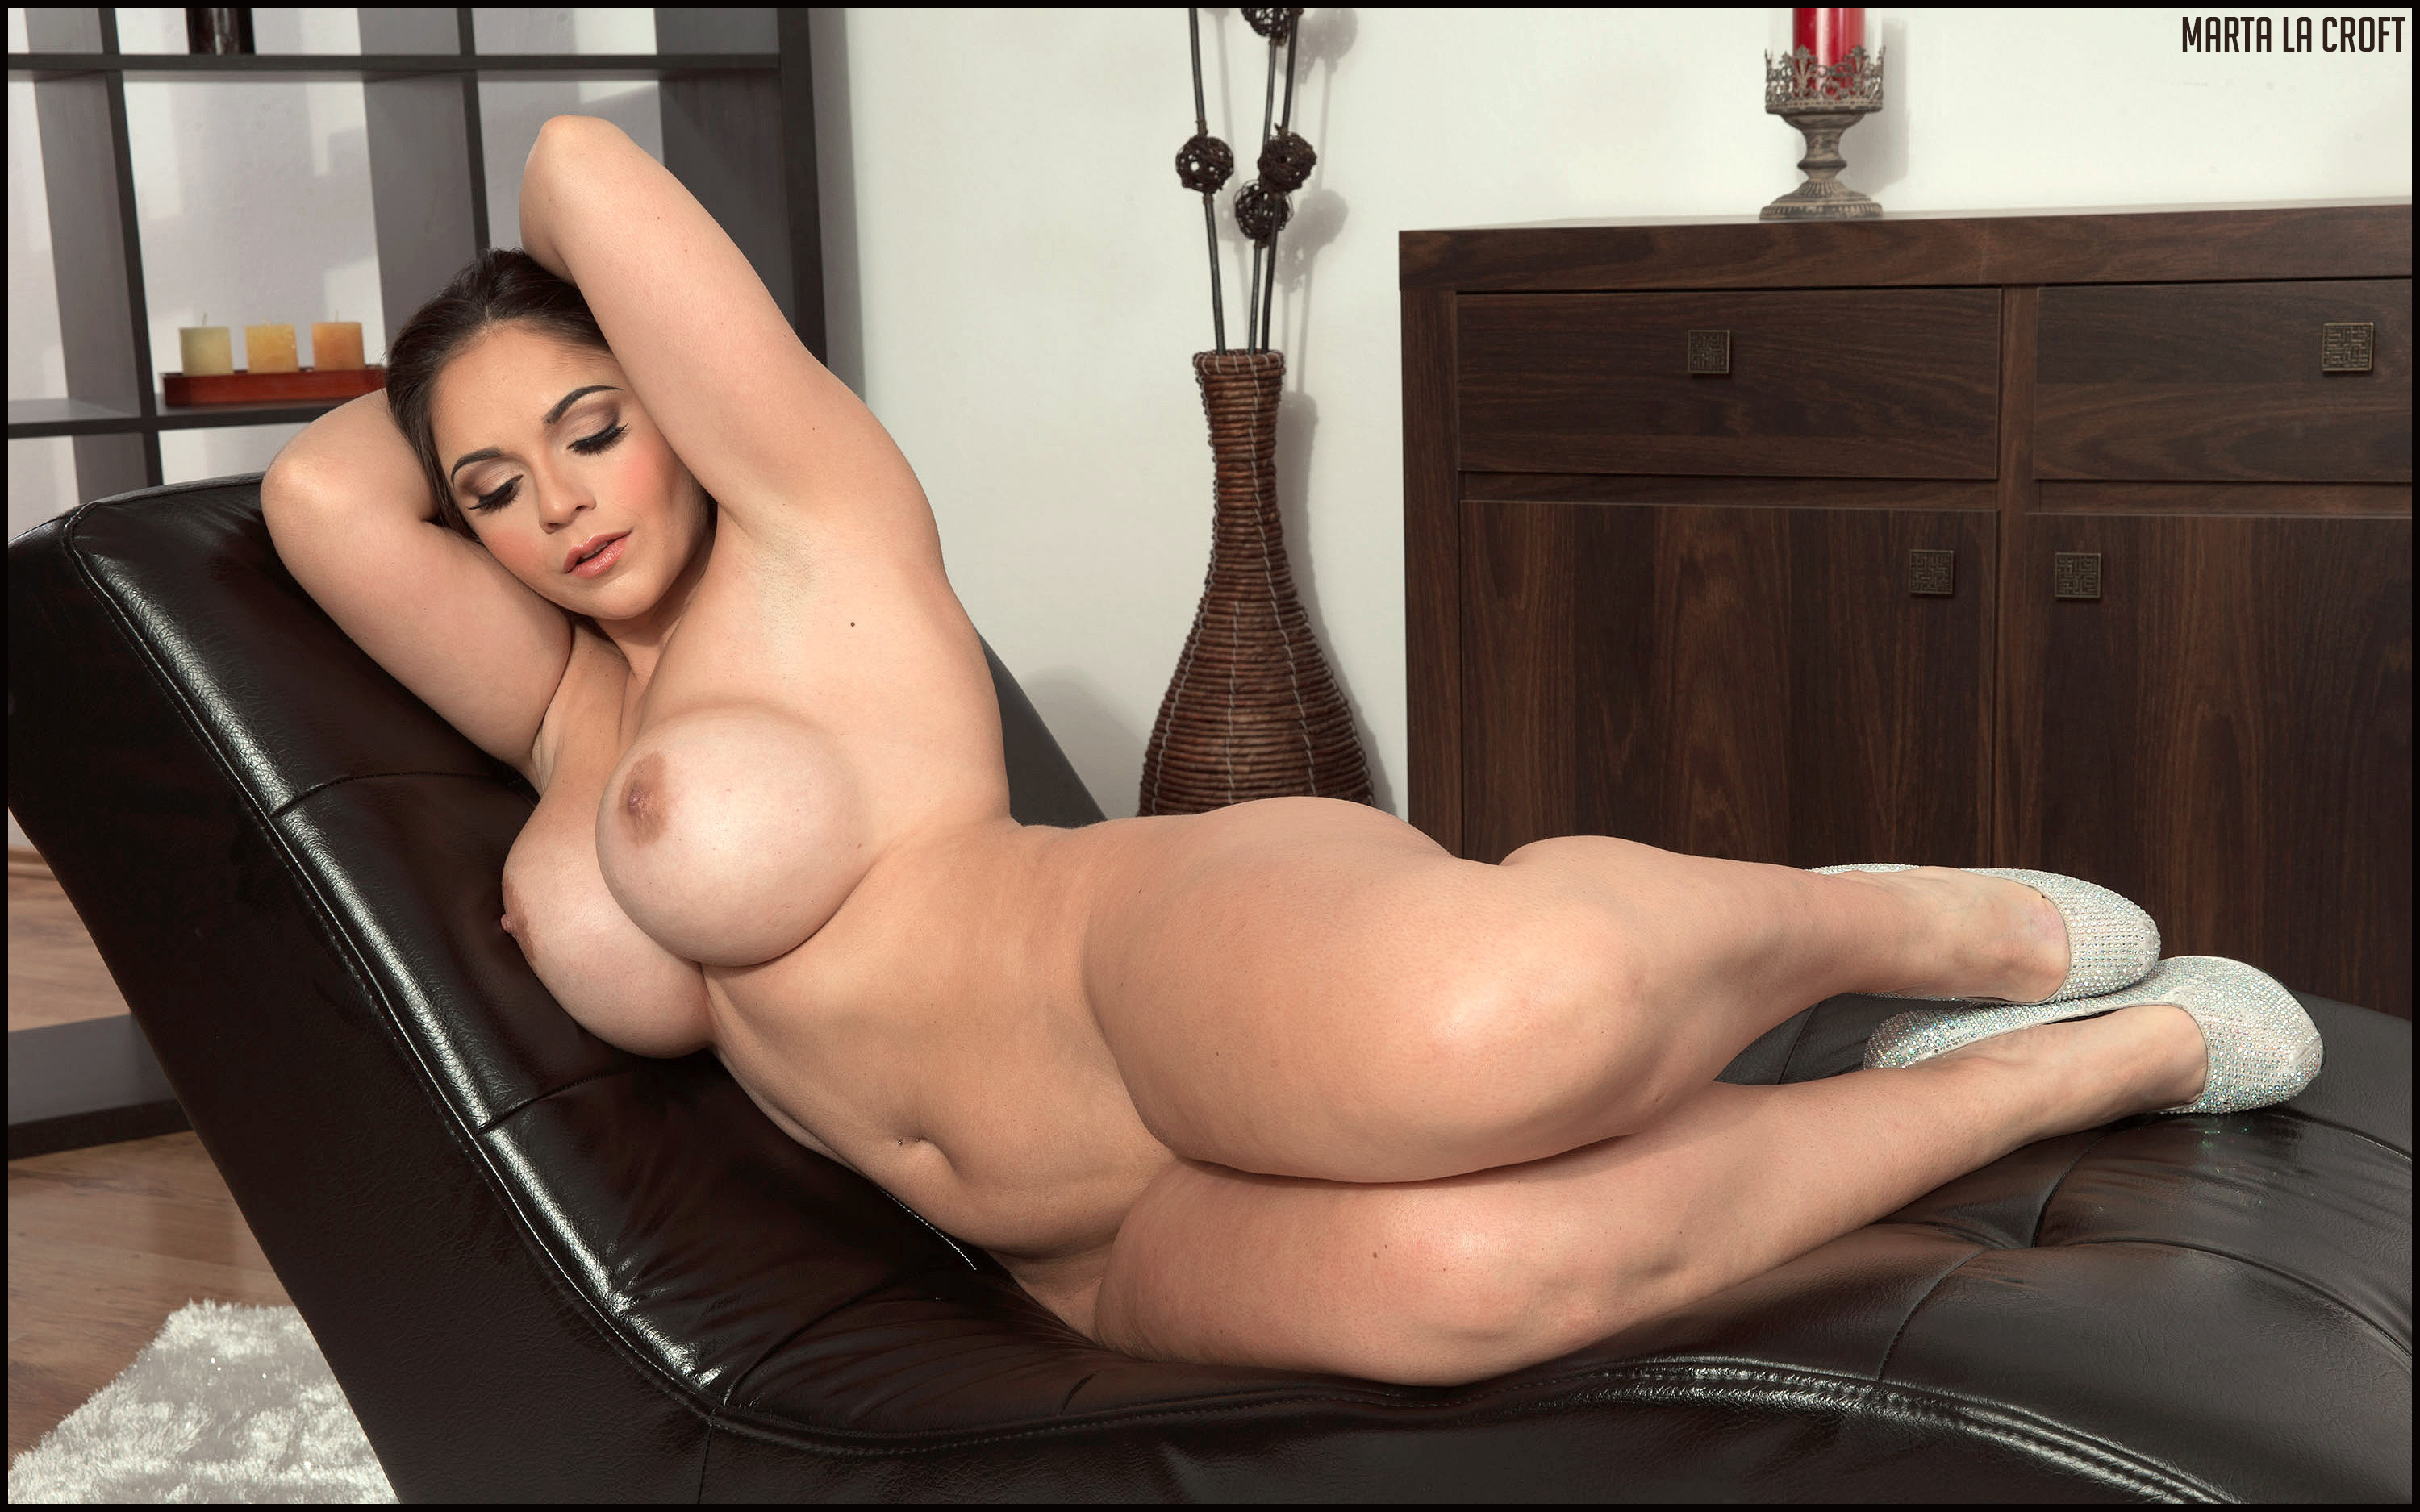 image Gianna michaels fucking a massive toy dildo